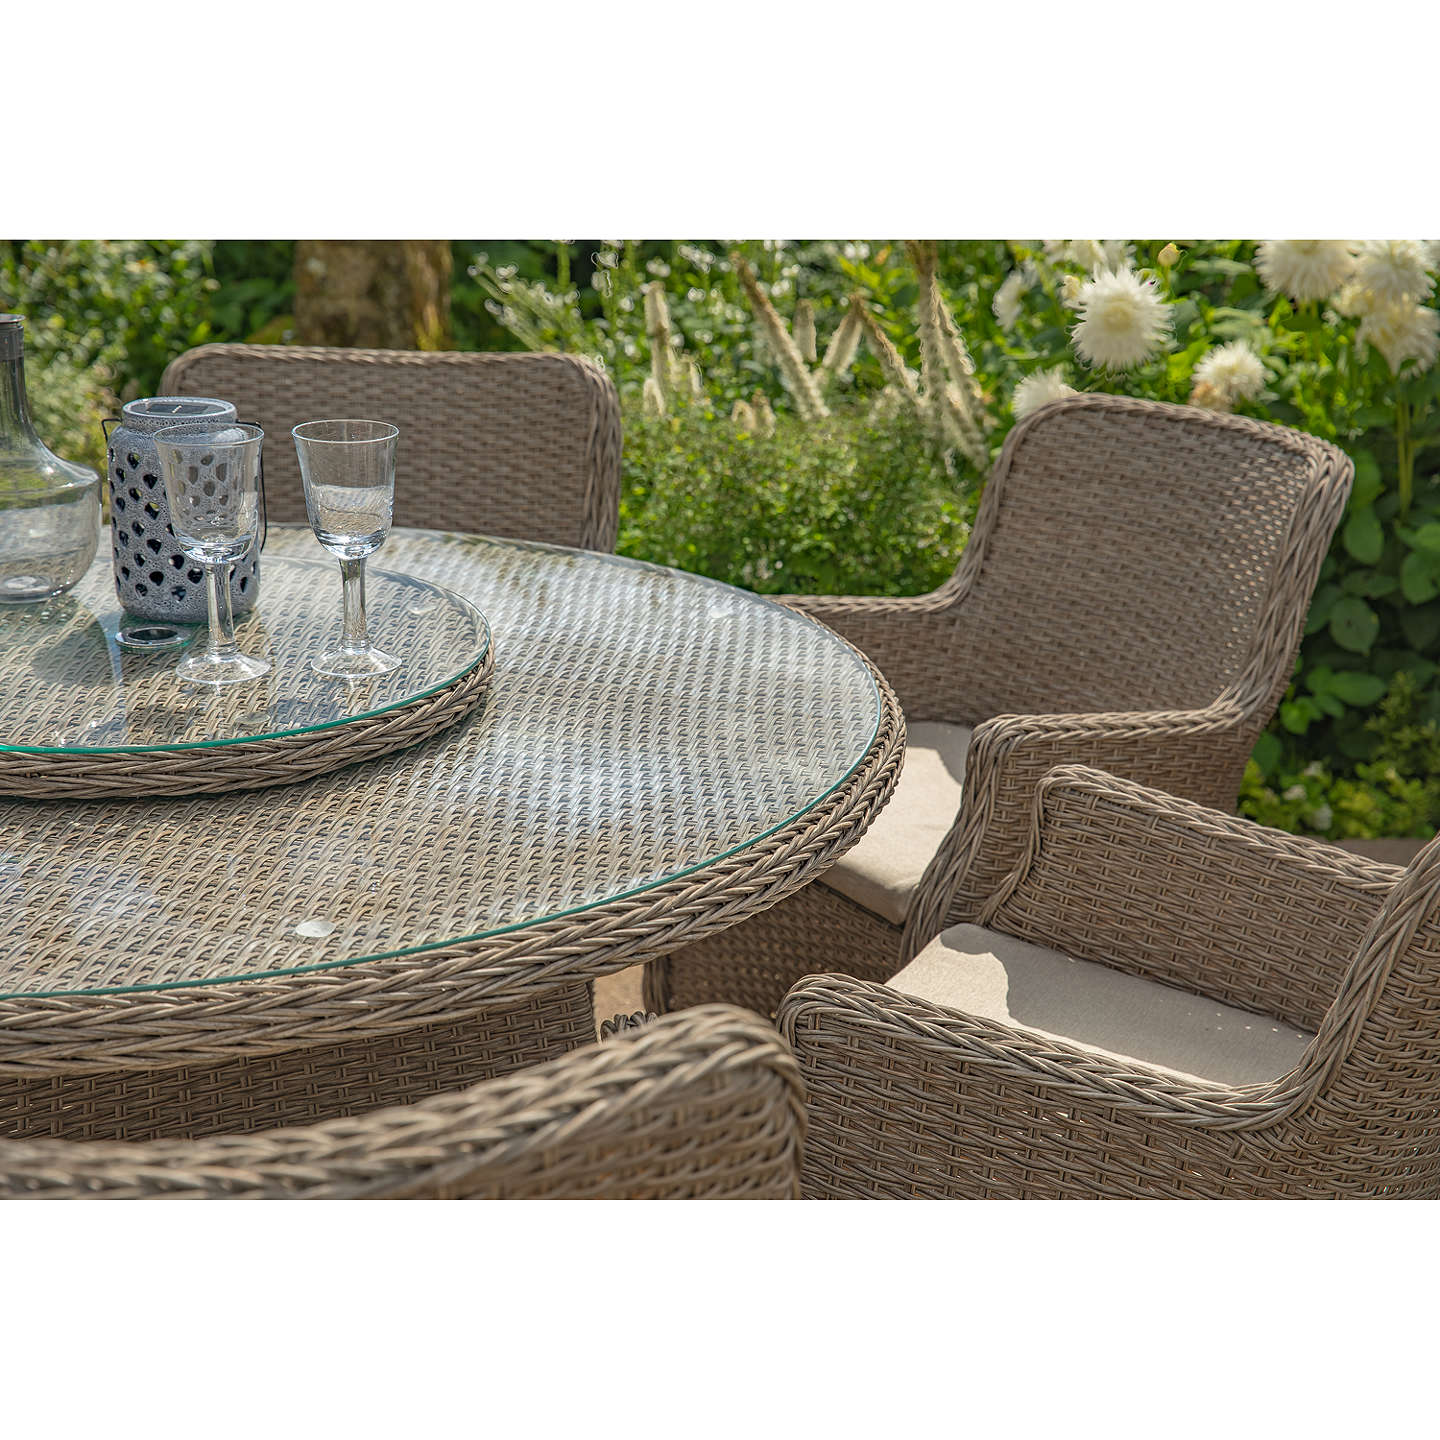 LG Outdoor Saigon 6 Seater Garden Dining Table / Chairs Set with ...